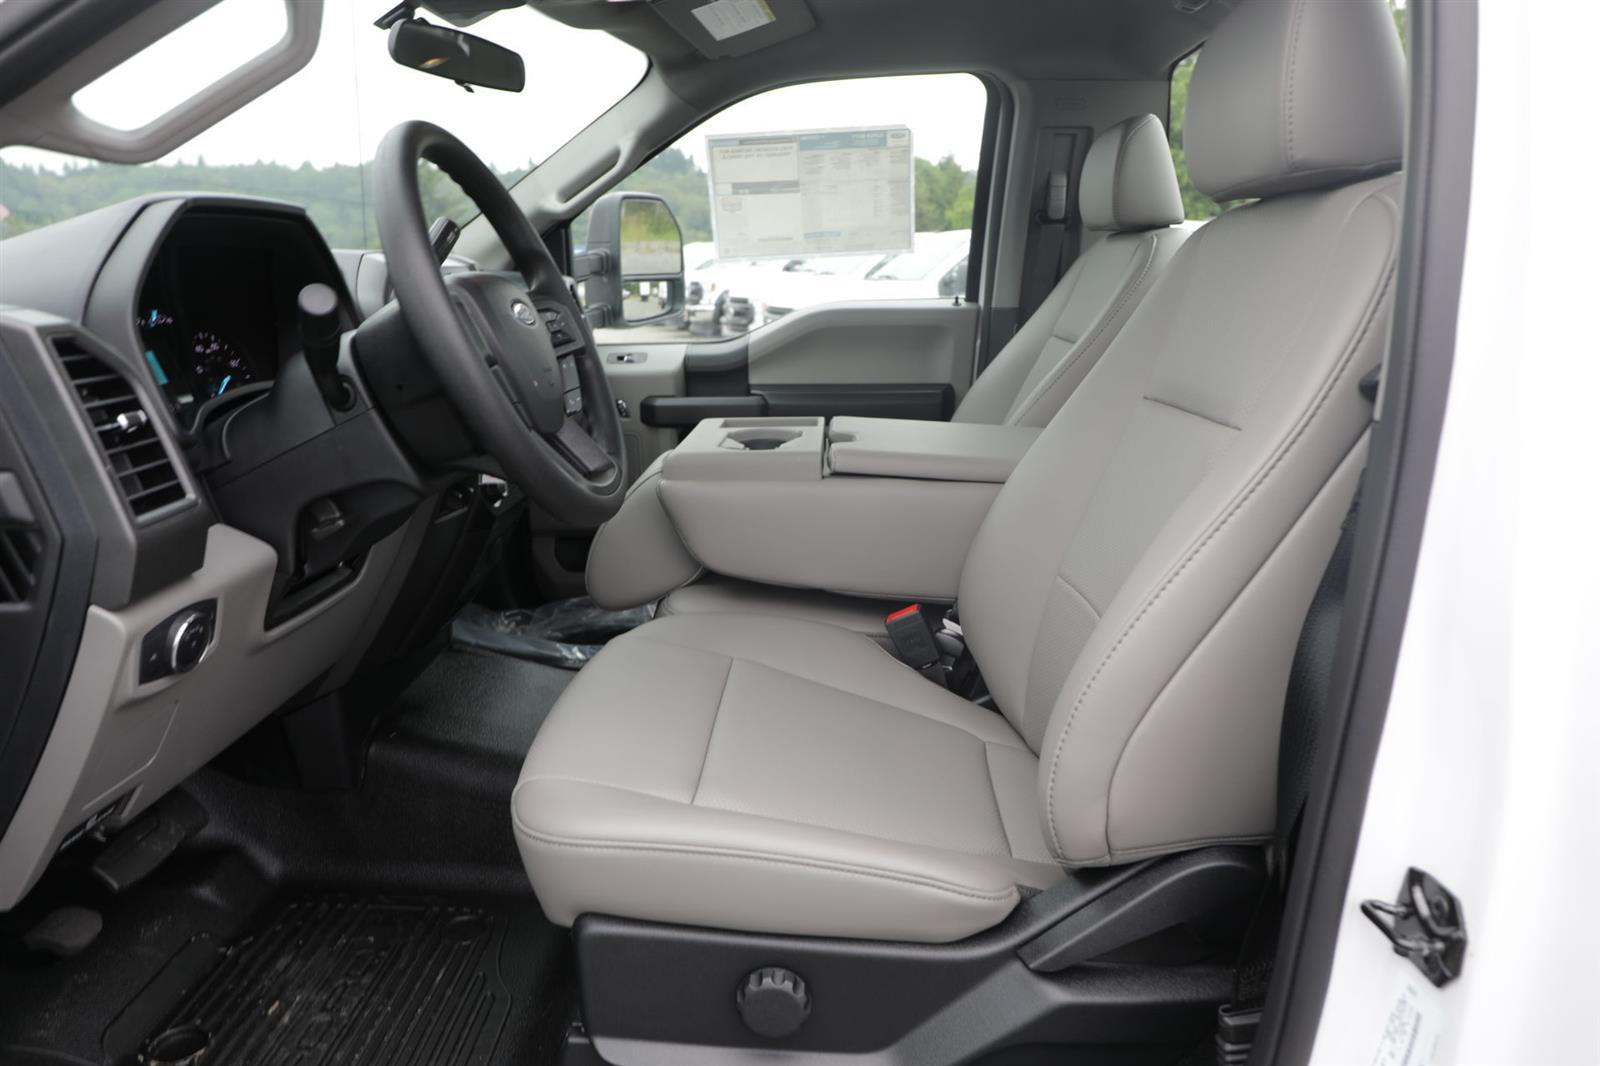 2020 Ford F-450 Regular Cab DRW 4x2, Cab Chassis #E9260 - photo 14